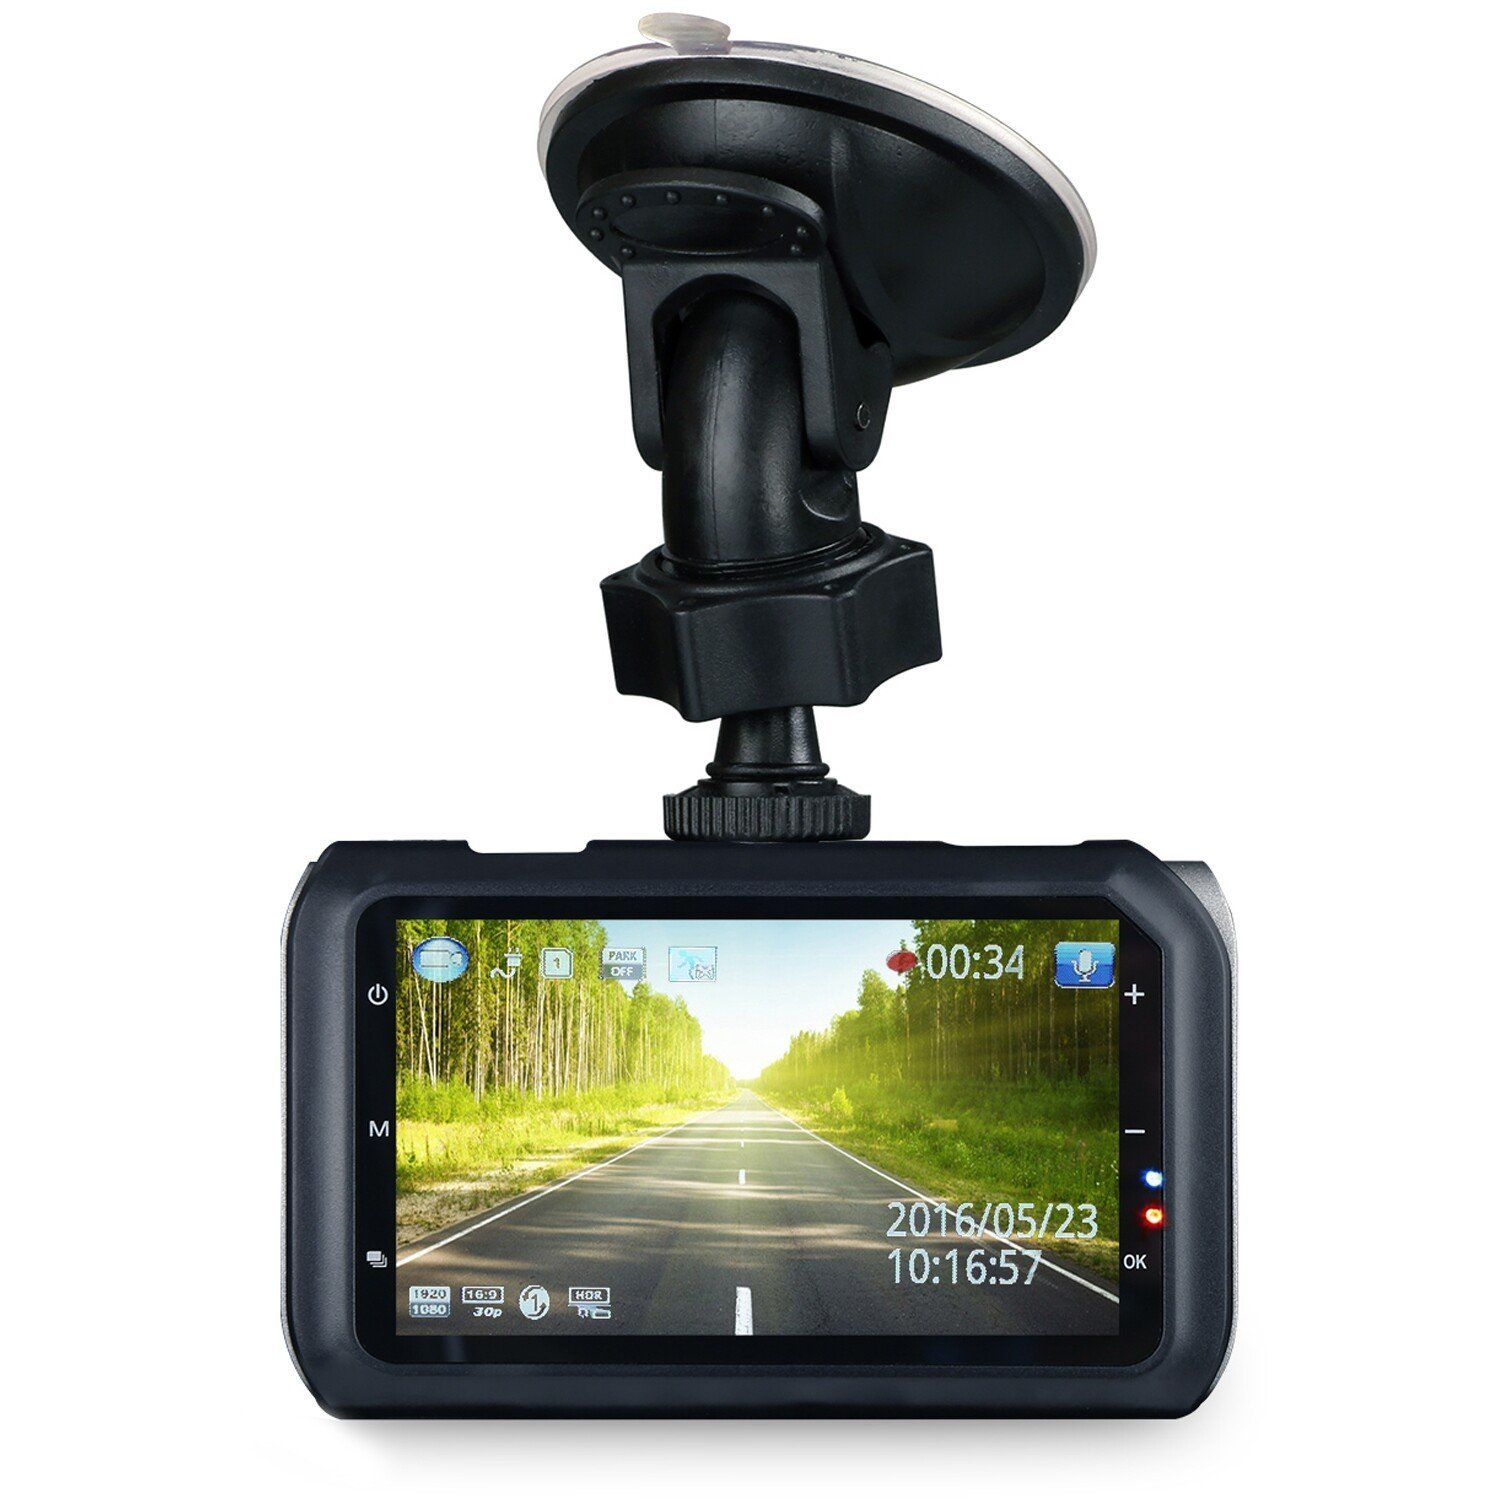 Z-Edge Z3 Car Dash Cam 3 inches 2K Dashboard Camera Recorder with 32GB SD Card, Ambarella Chip, HDR, Night Vision G-Sensor, Loop Recording, Parking Monitor